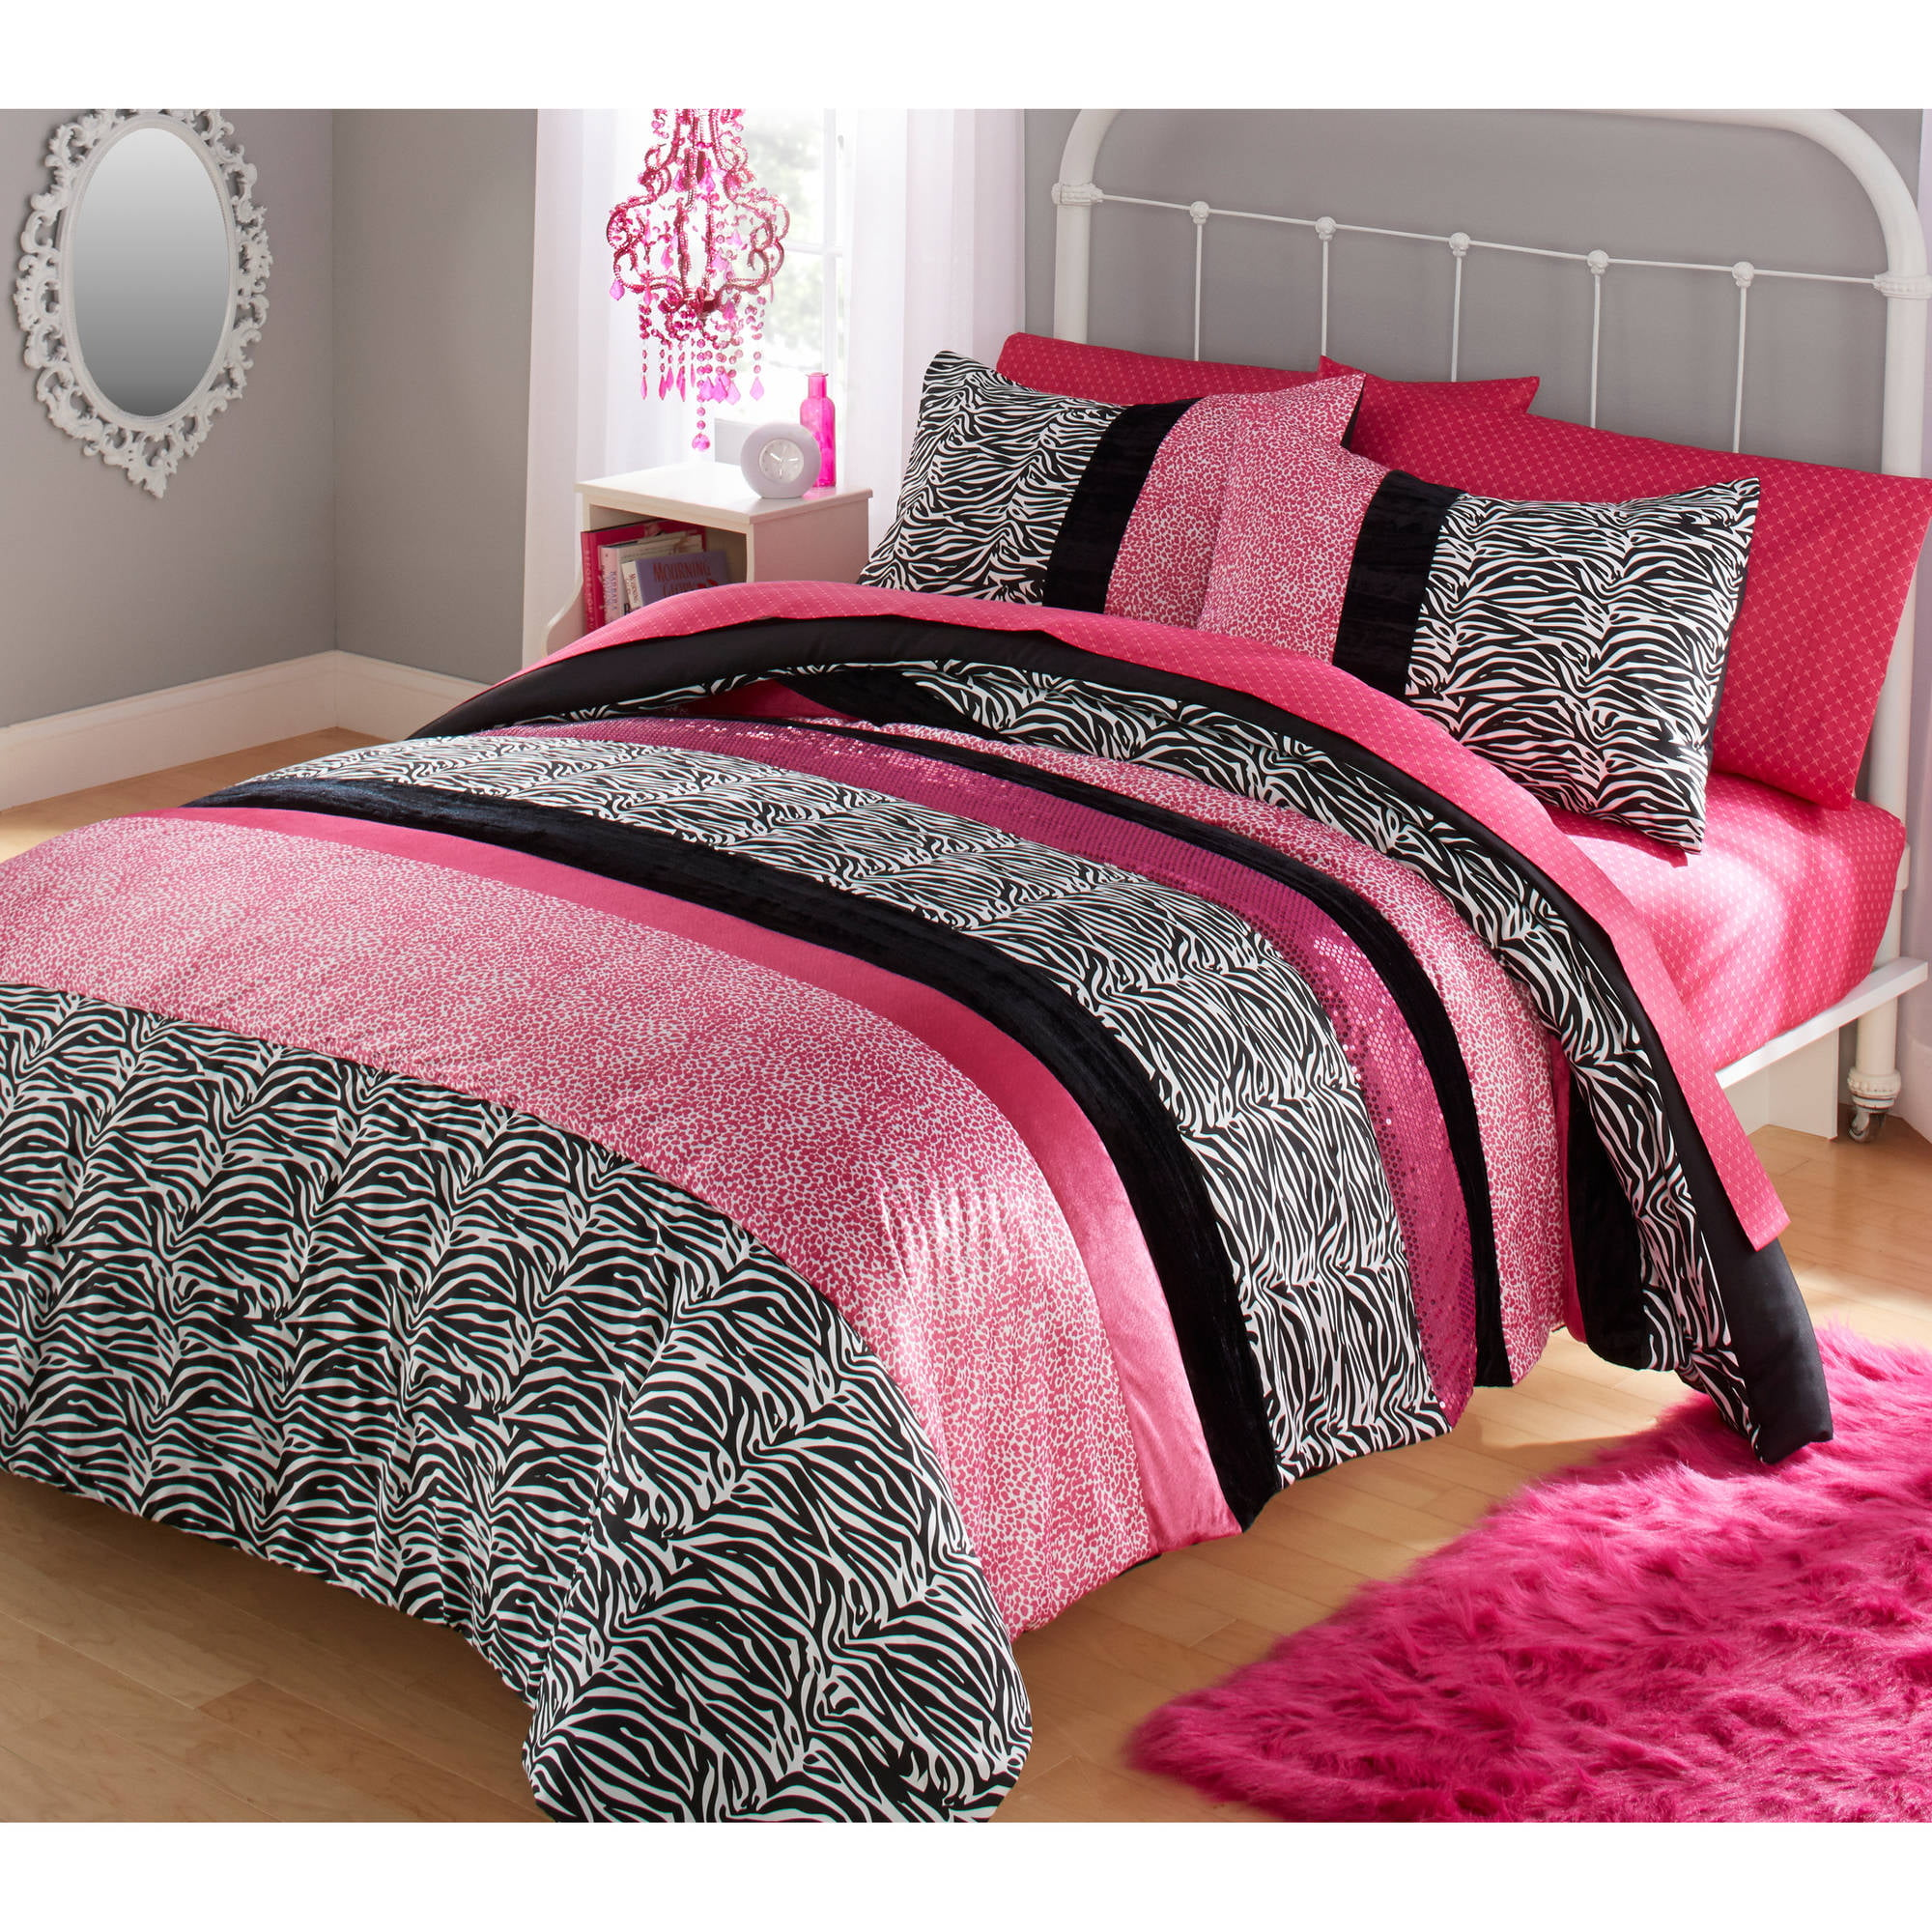 twin pink full bedding sheets bed attractive incredible pale set light solid sets king queen com crib comforter